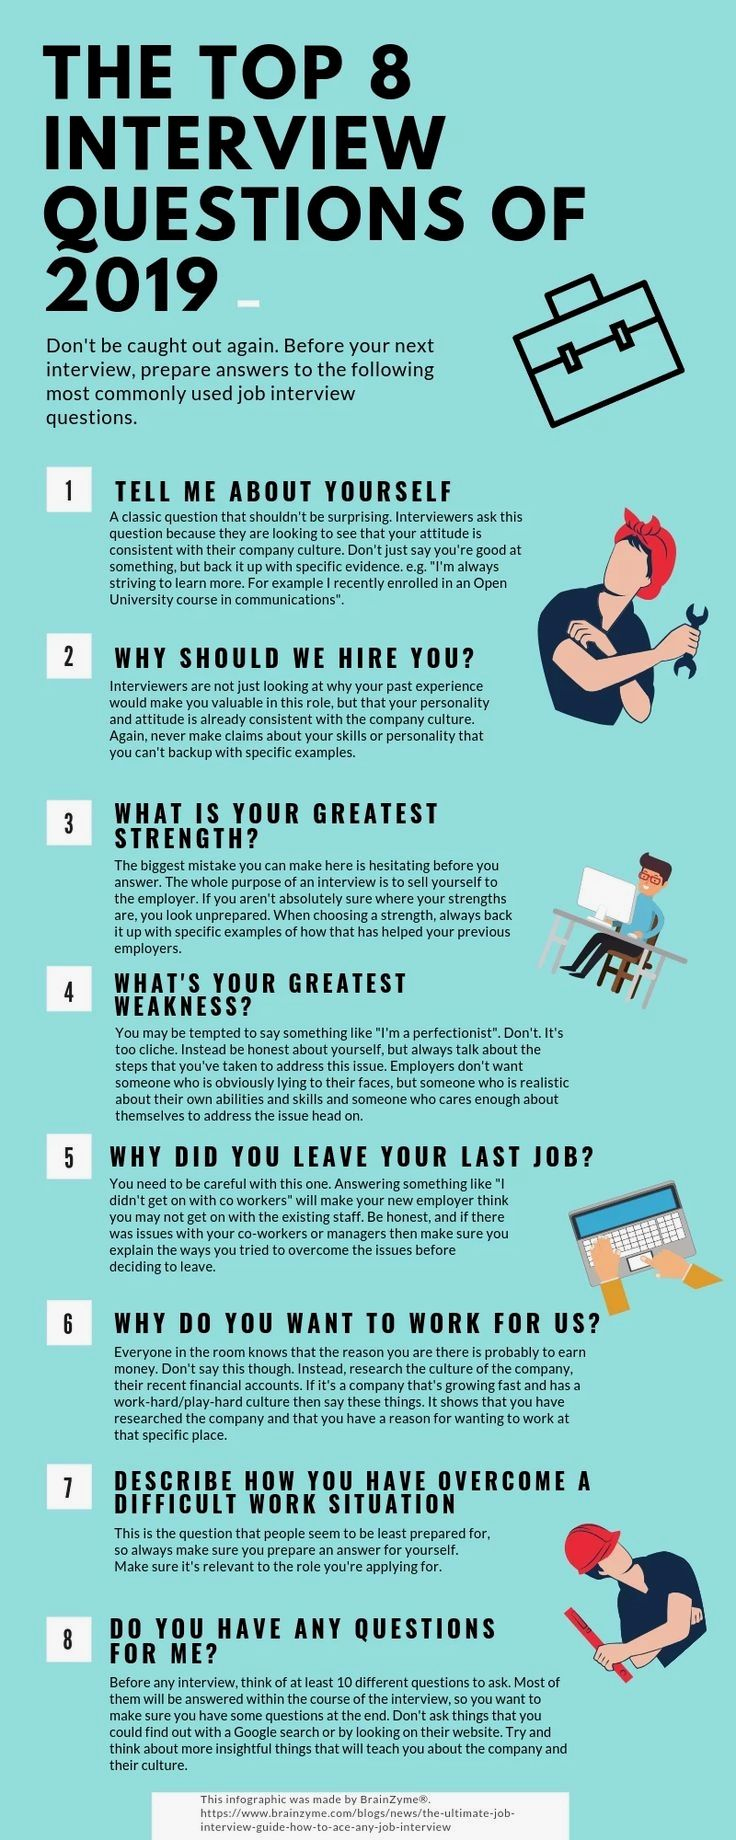 Pin By Malarvizhi Rajasekar On Resume In 2020 Job Interview Answers Job Interview Questions Common Job Interview Questions